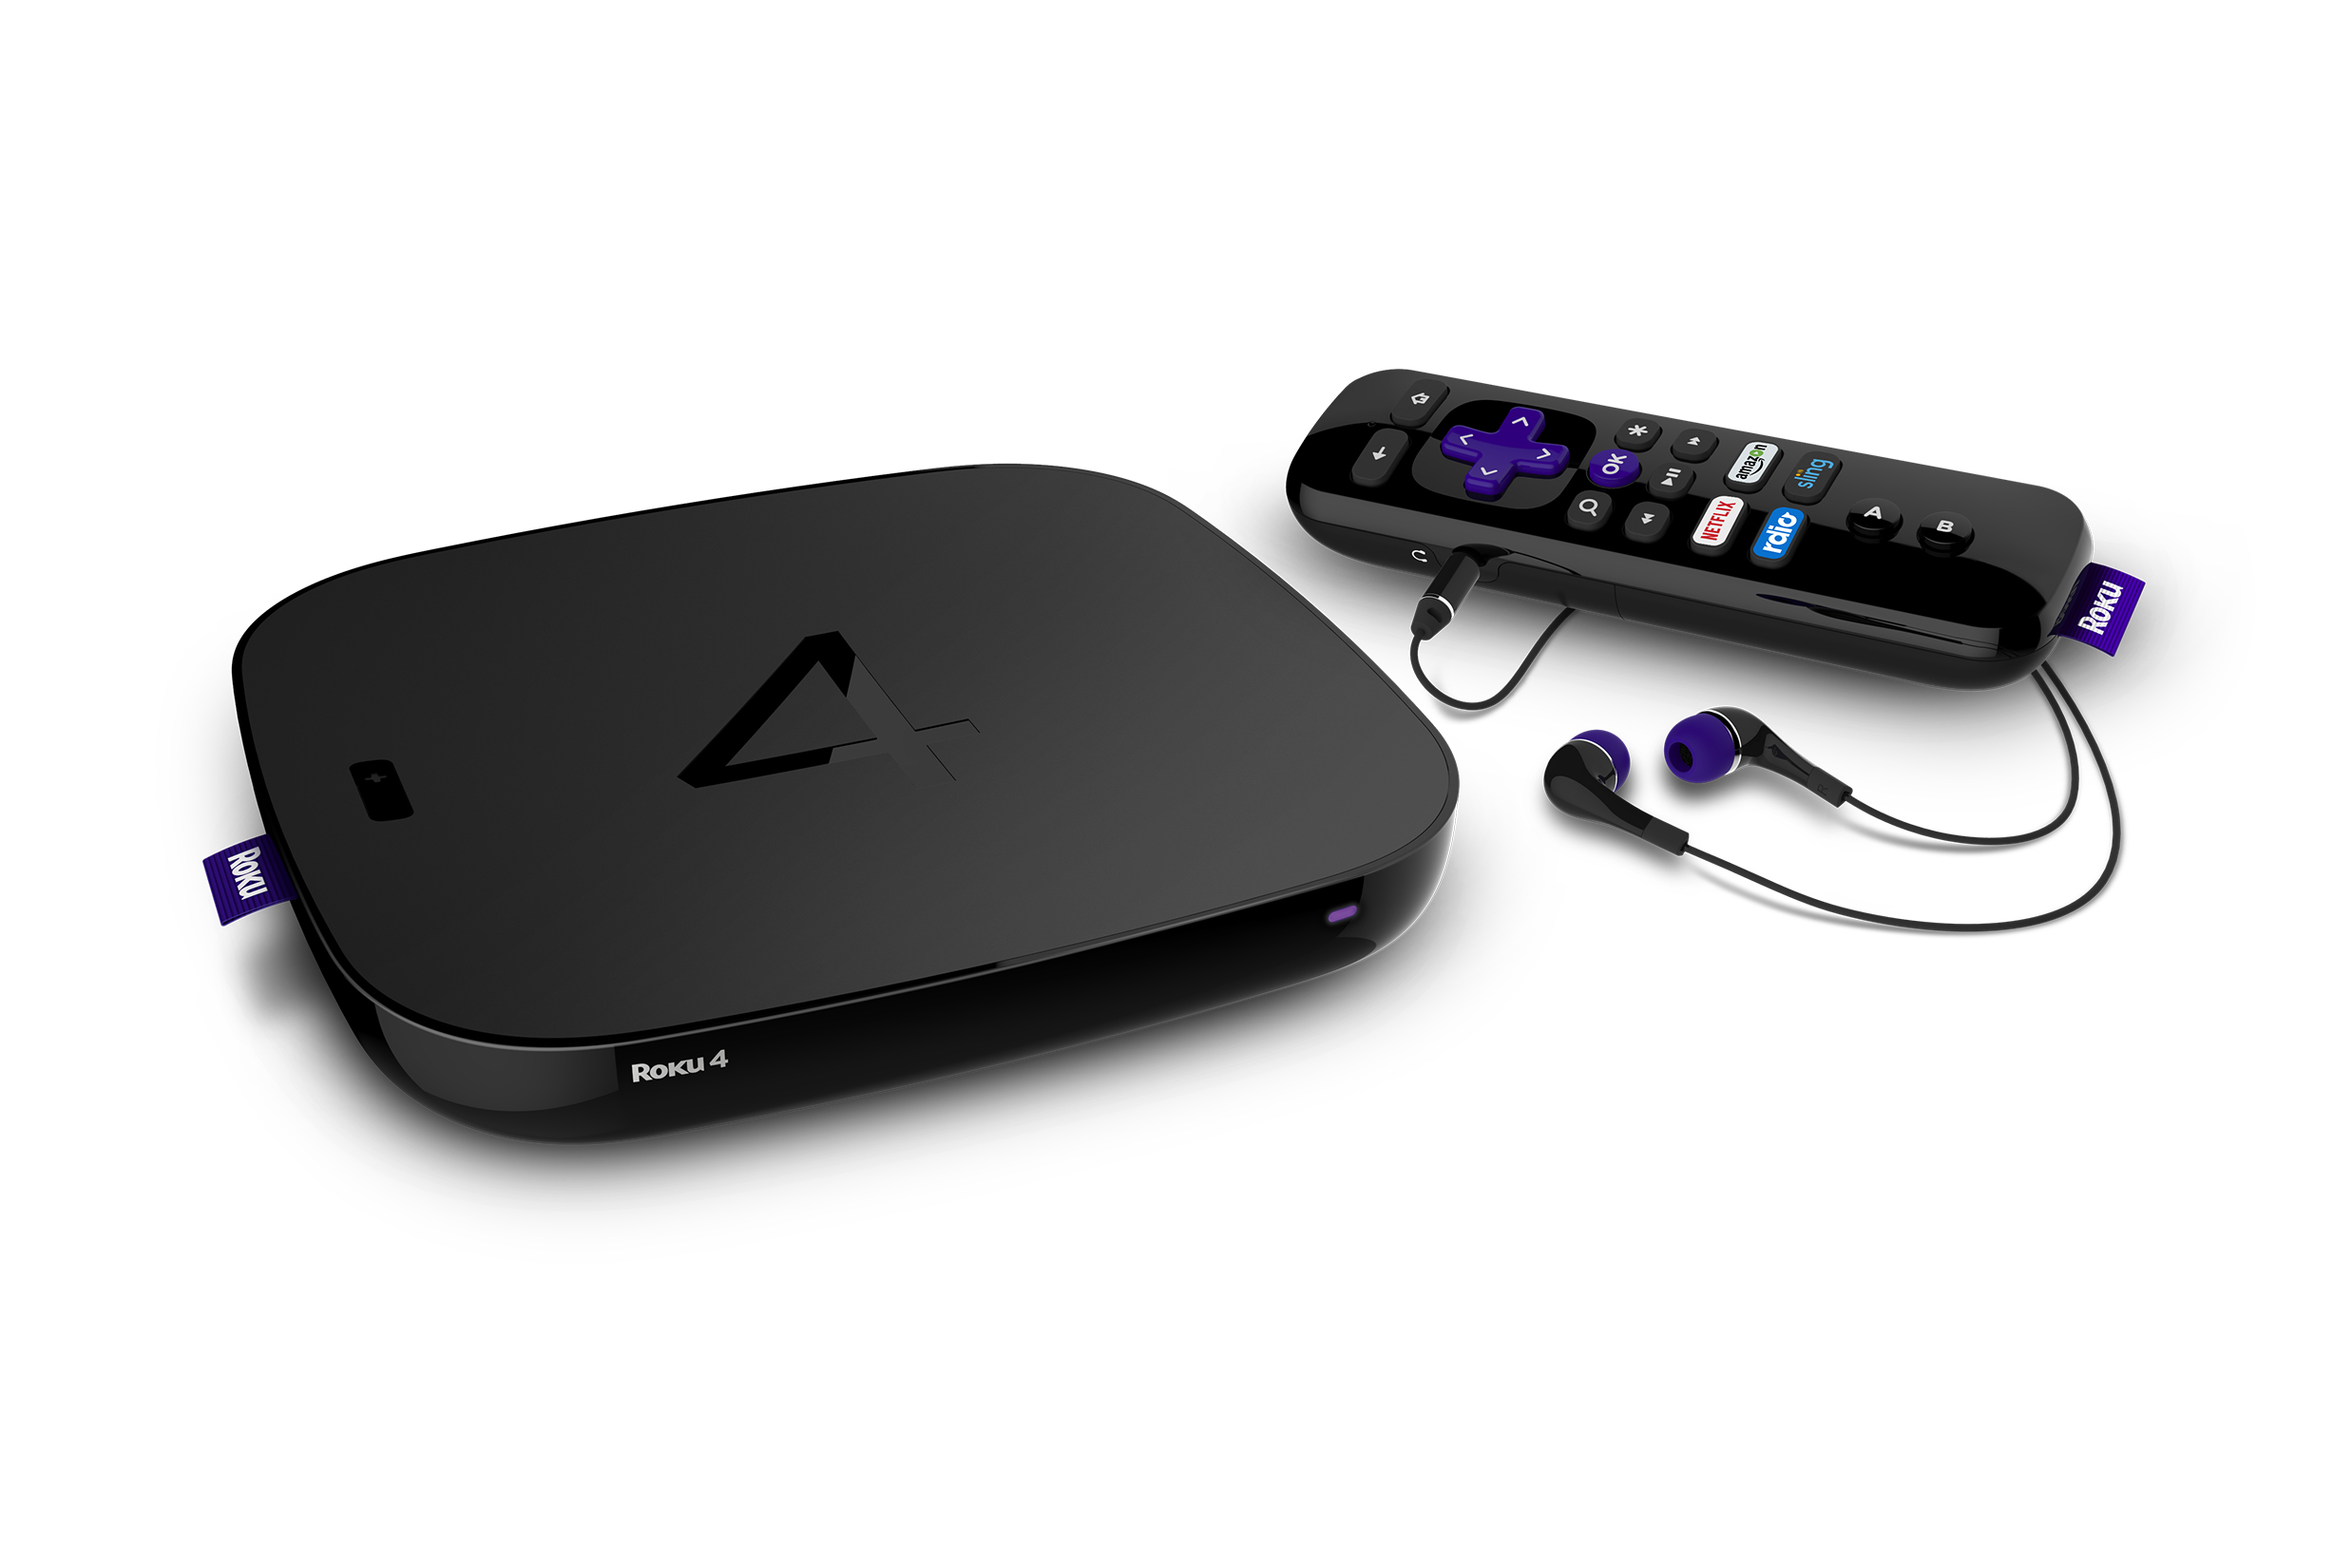 ROKU-4-REMOTE-TOP-DOWN-300dpi